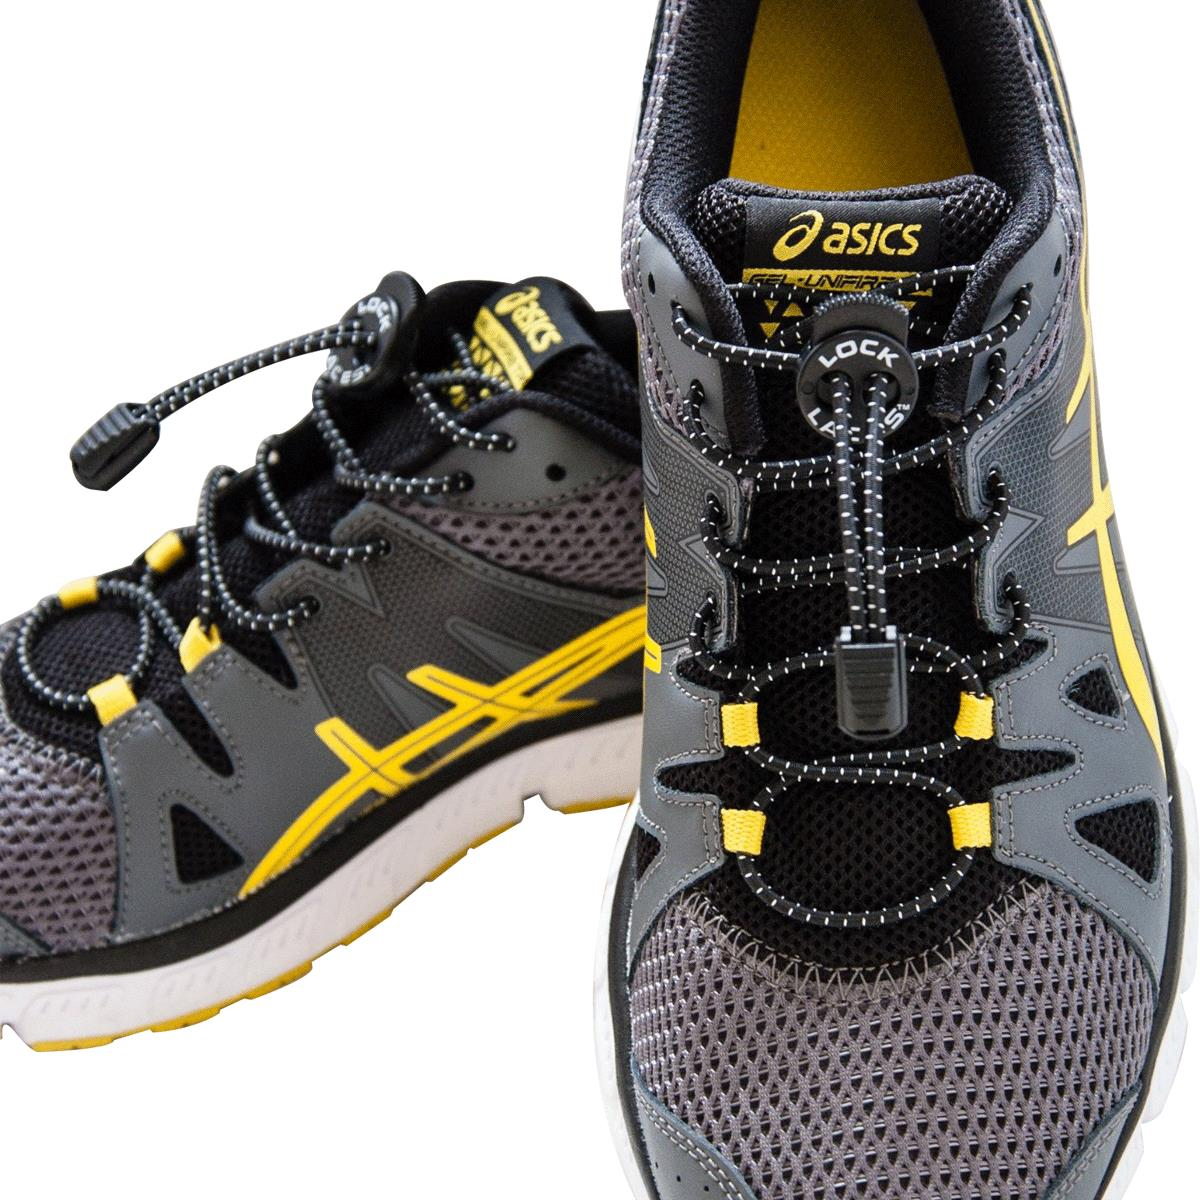 How Should You Tie Your Shoes For Running